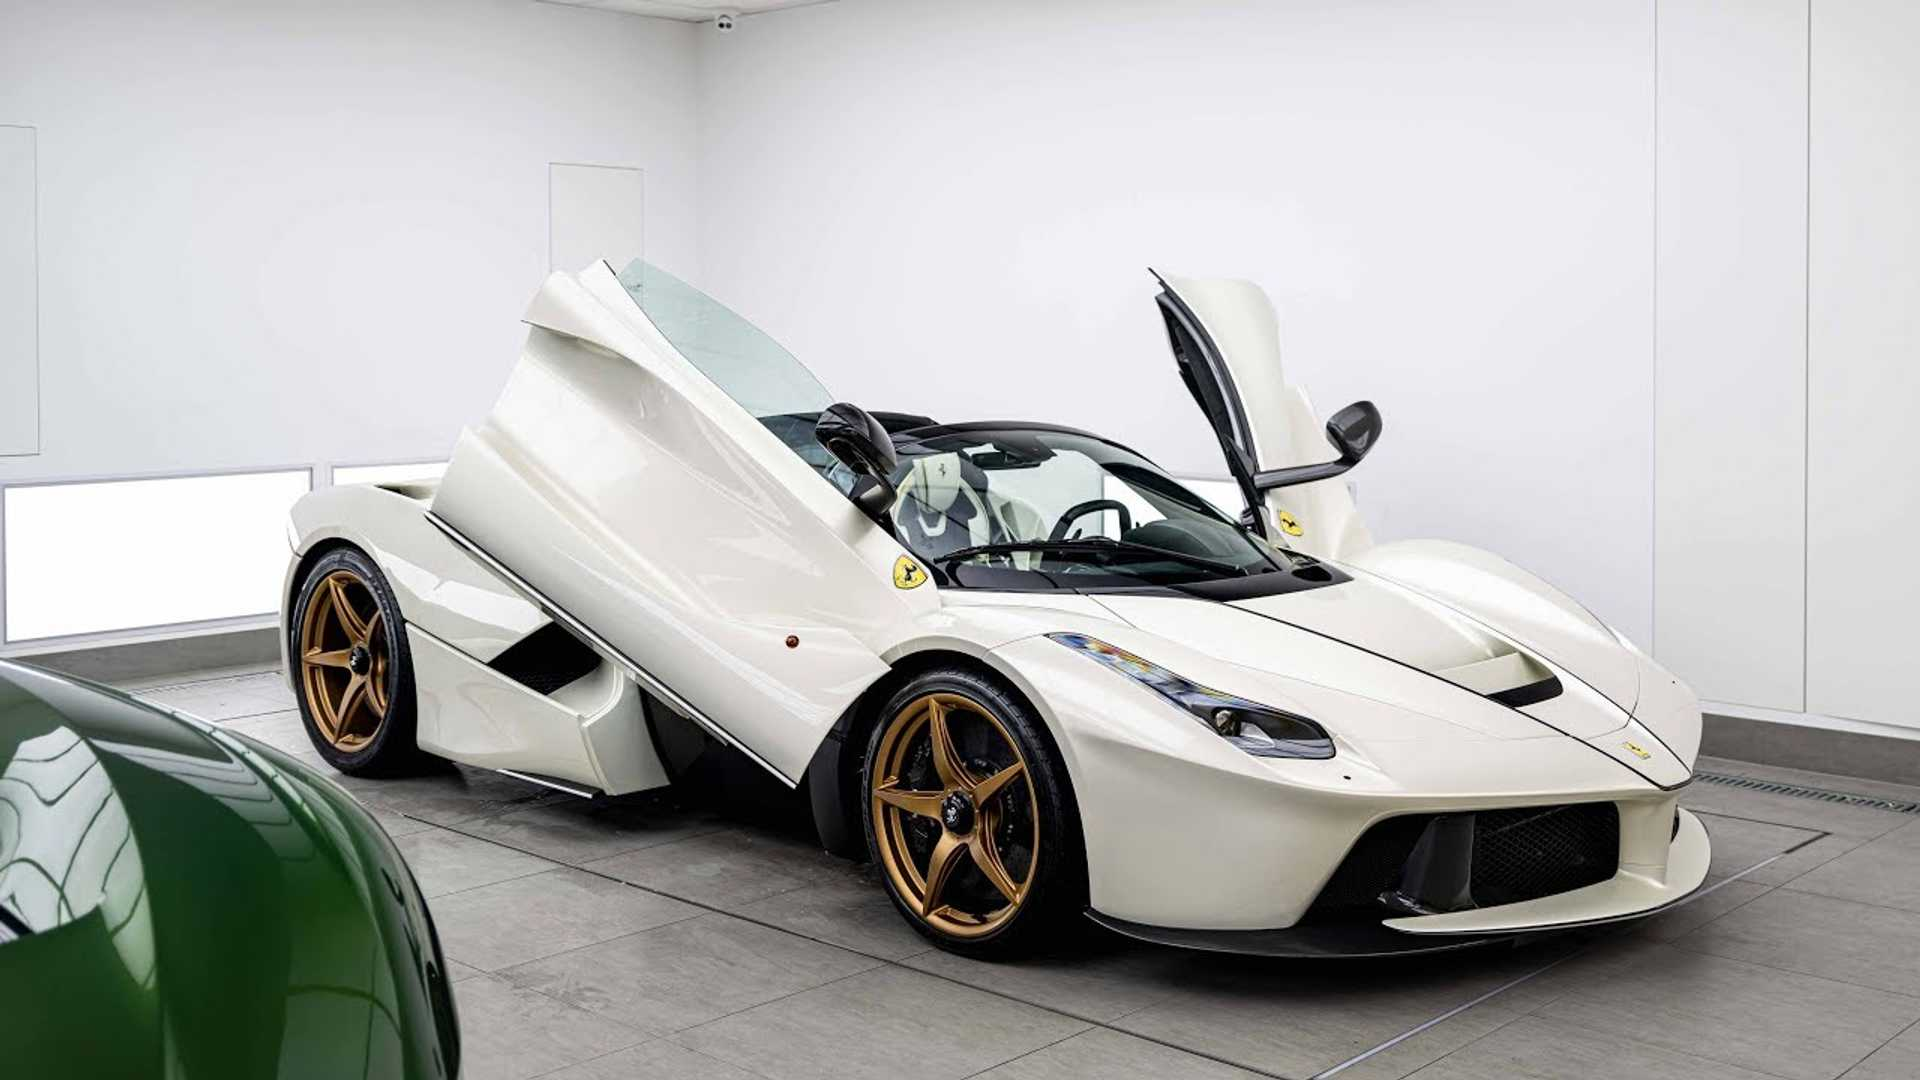 Watching LaFerrari Aperta Get Paint Protection Is A Zen Experience